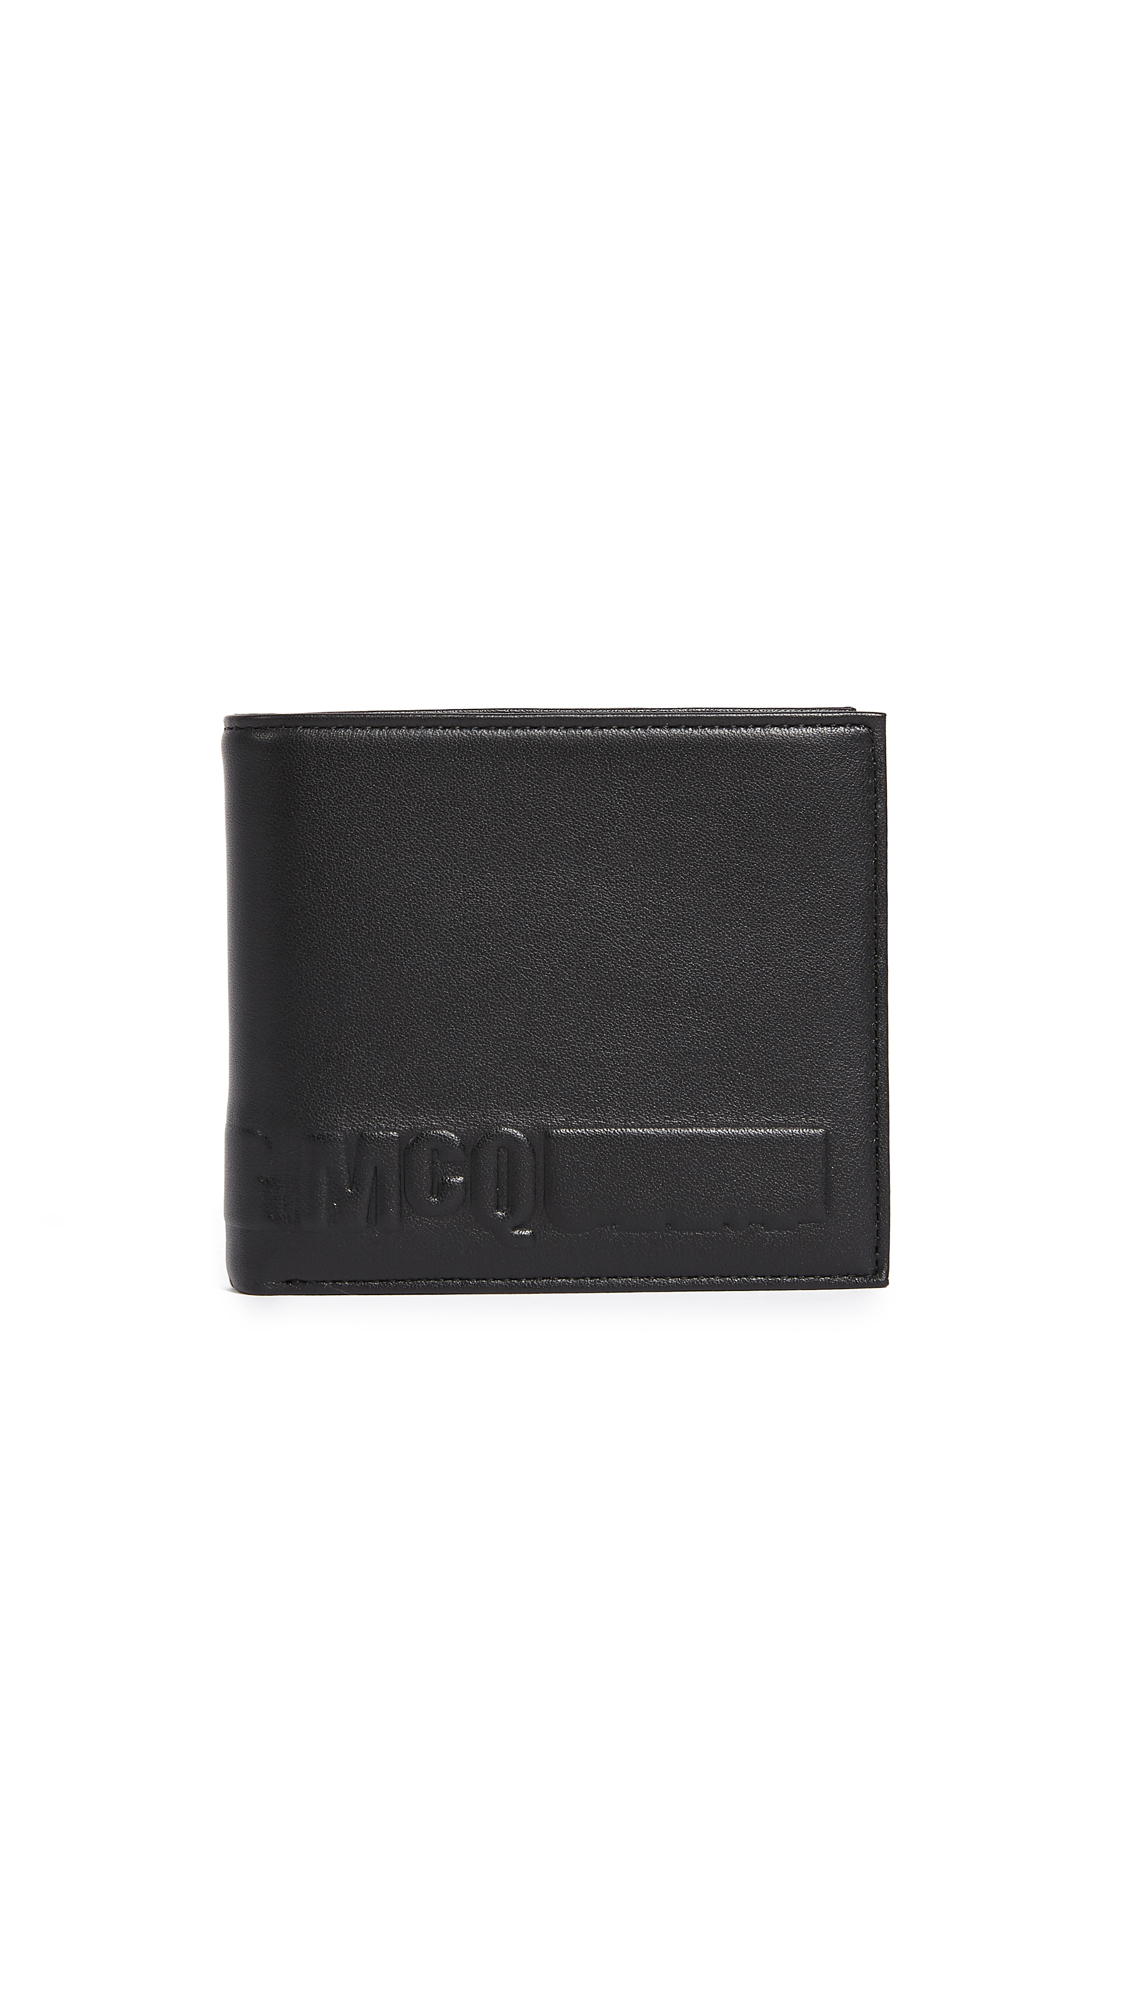 Mcq By Alexander Mcqueen Men'S Wallet Genuine Leather Coin Case Holder Purse Card Trifold, Black